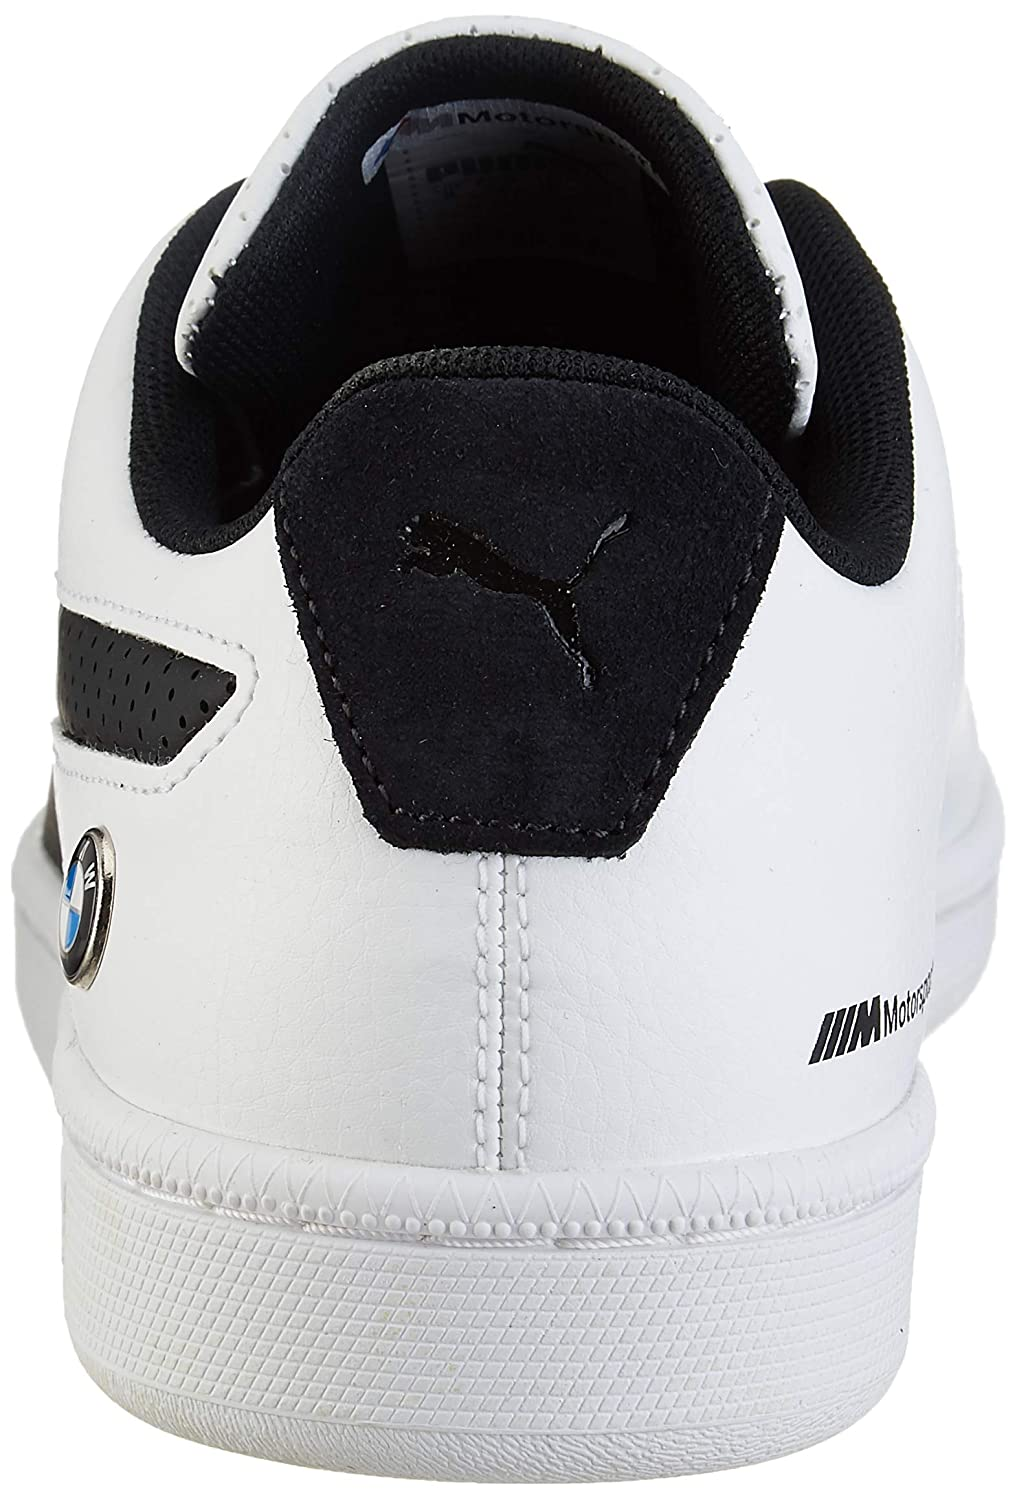 Men s BMW MMS Court Perf White Leather Sneakers-9 UK India (43 EU)  (30620002)  Buy Online at Low Prices in India - Amazon.in 07329a658